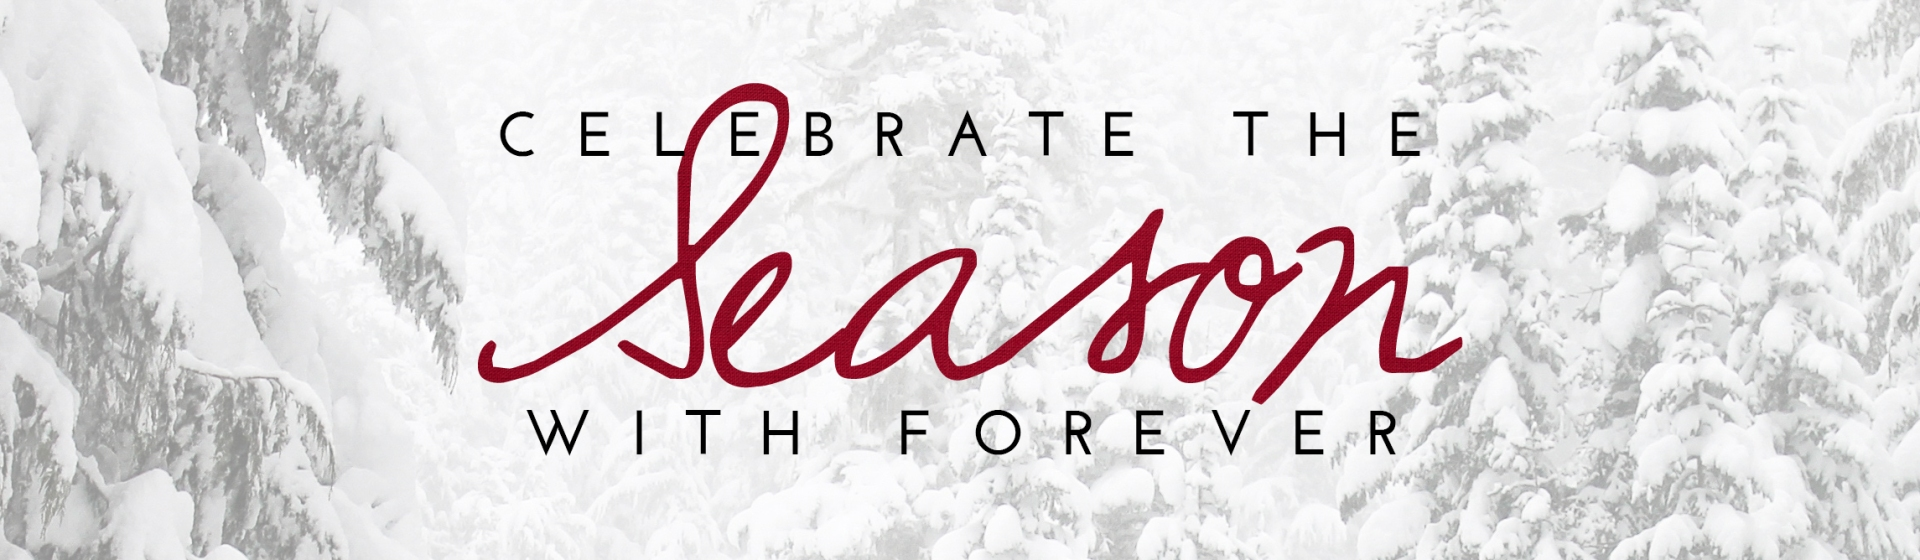 Welcome to Forever Holiday 2018! | read forever